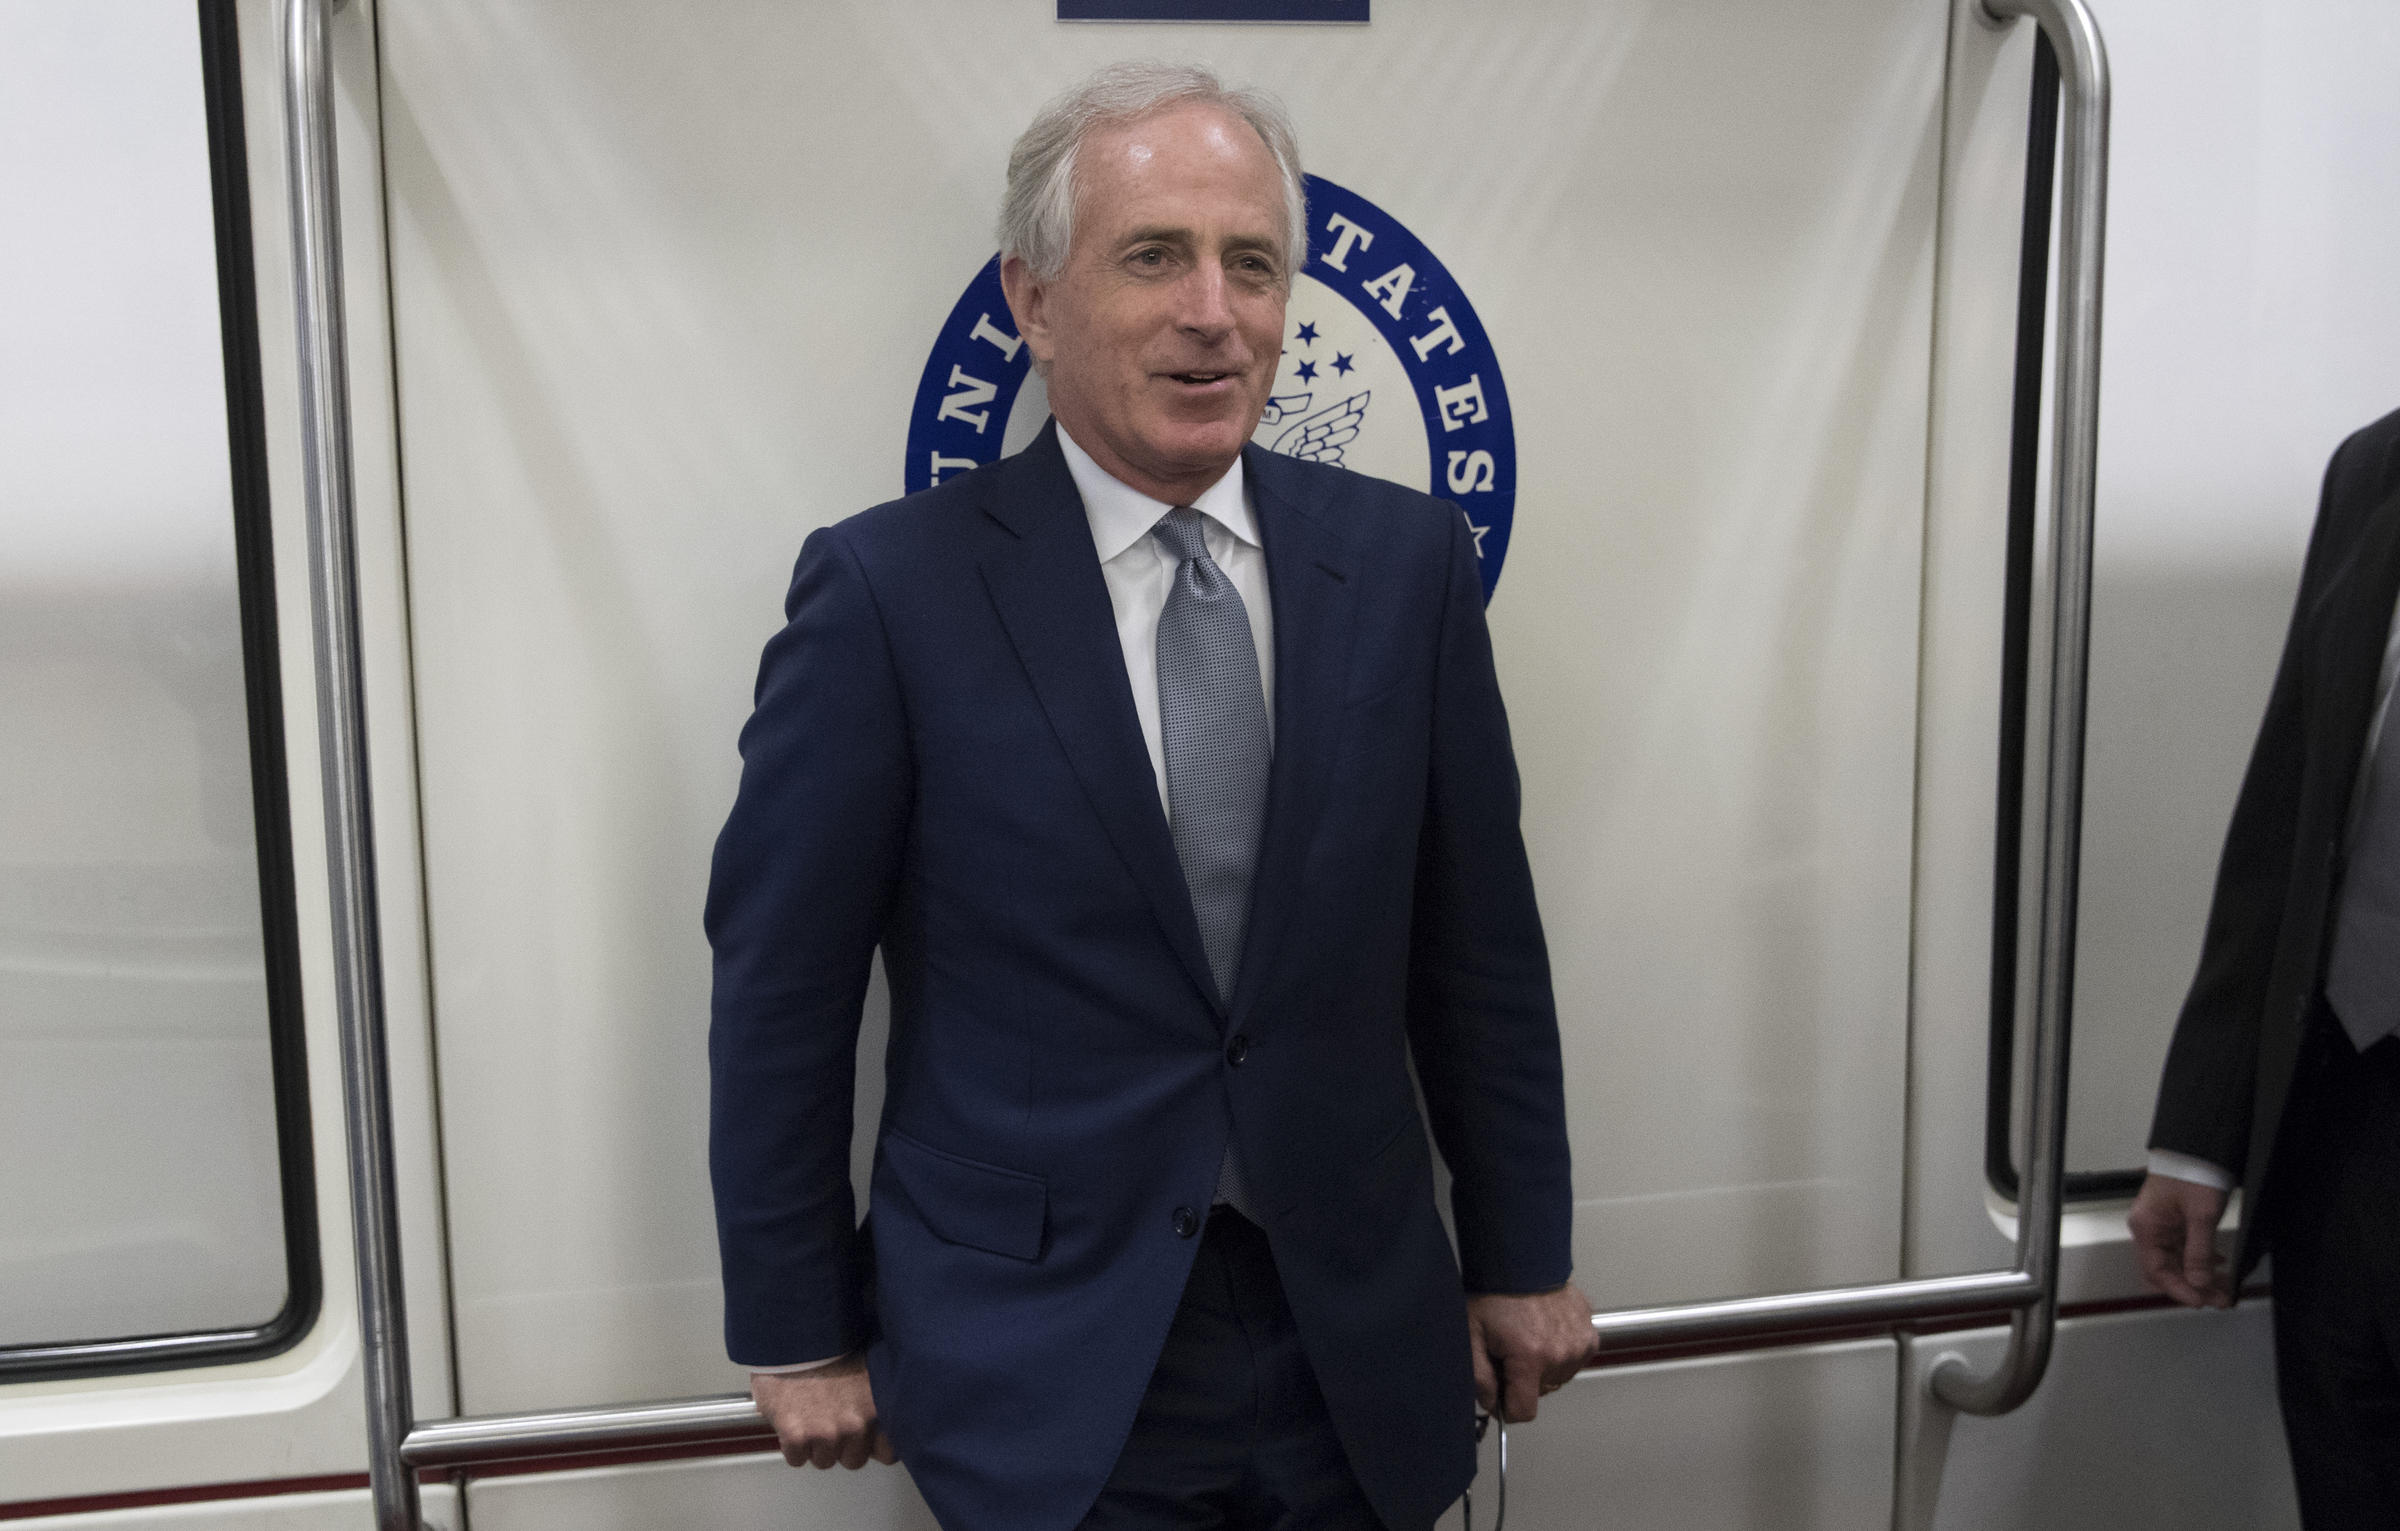 As Corker reconsiders, Blackburn campaign calls doubters 'sexist'